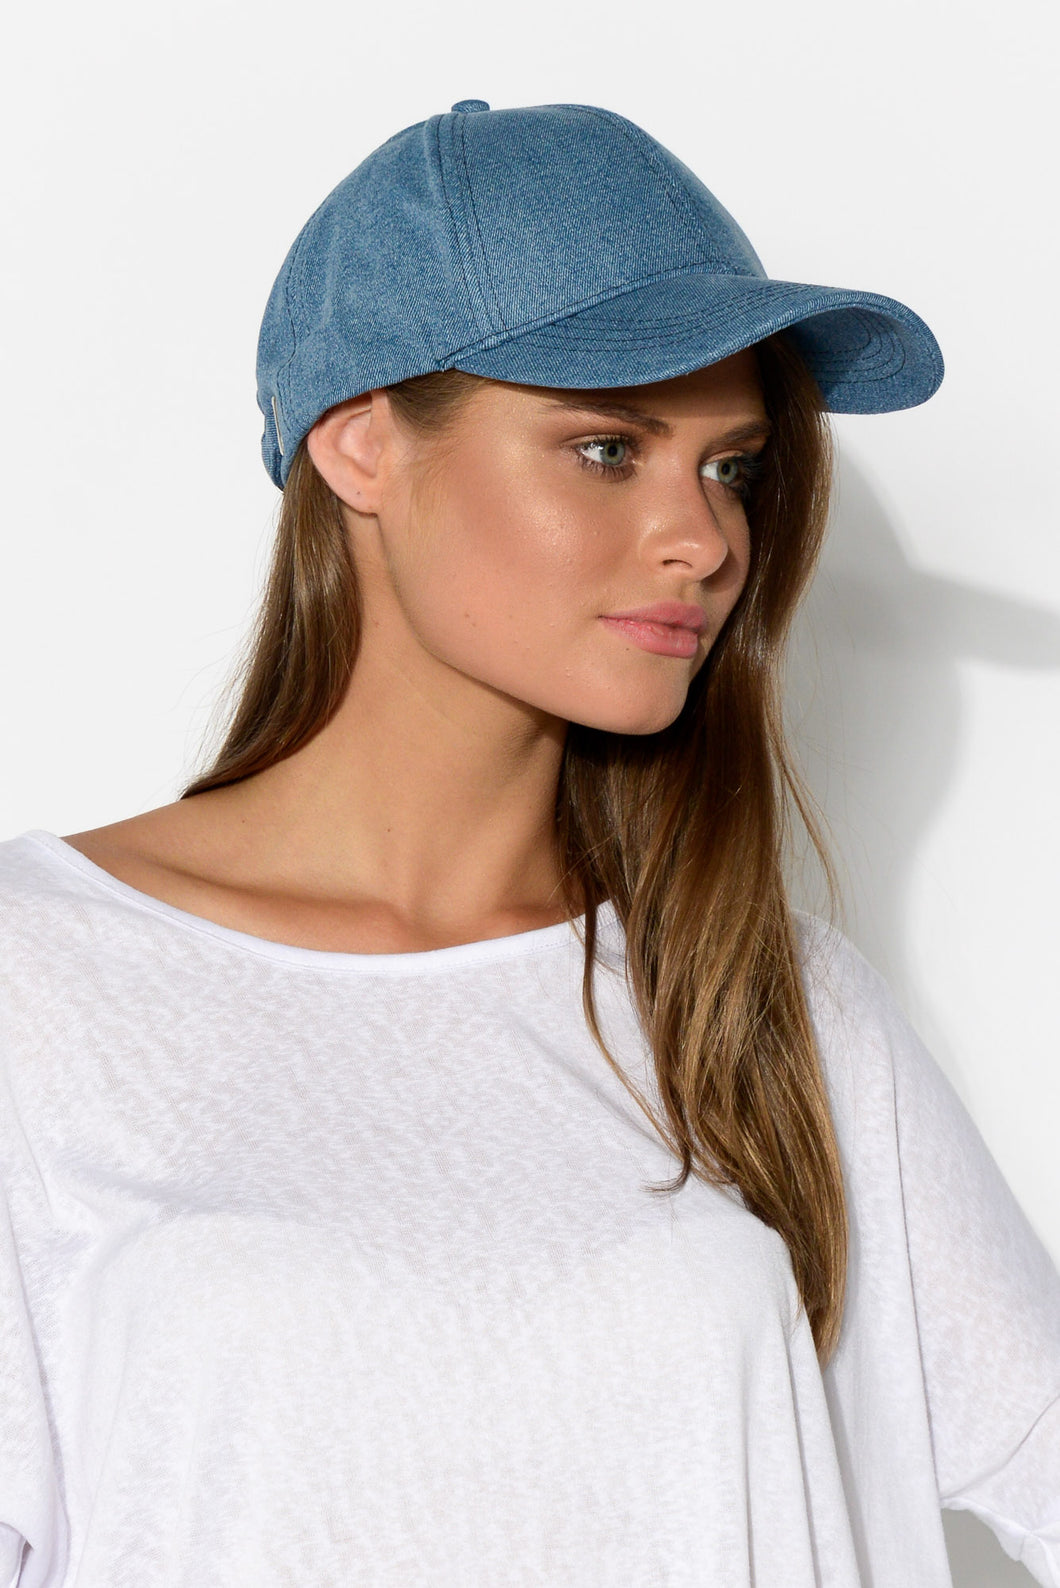 Seth Blue Denim Cap - Blue Bungalow